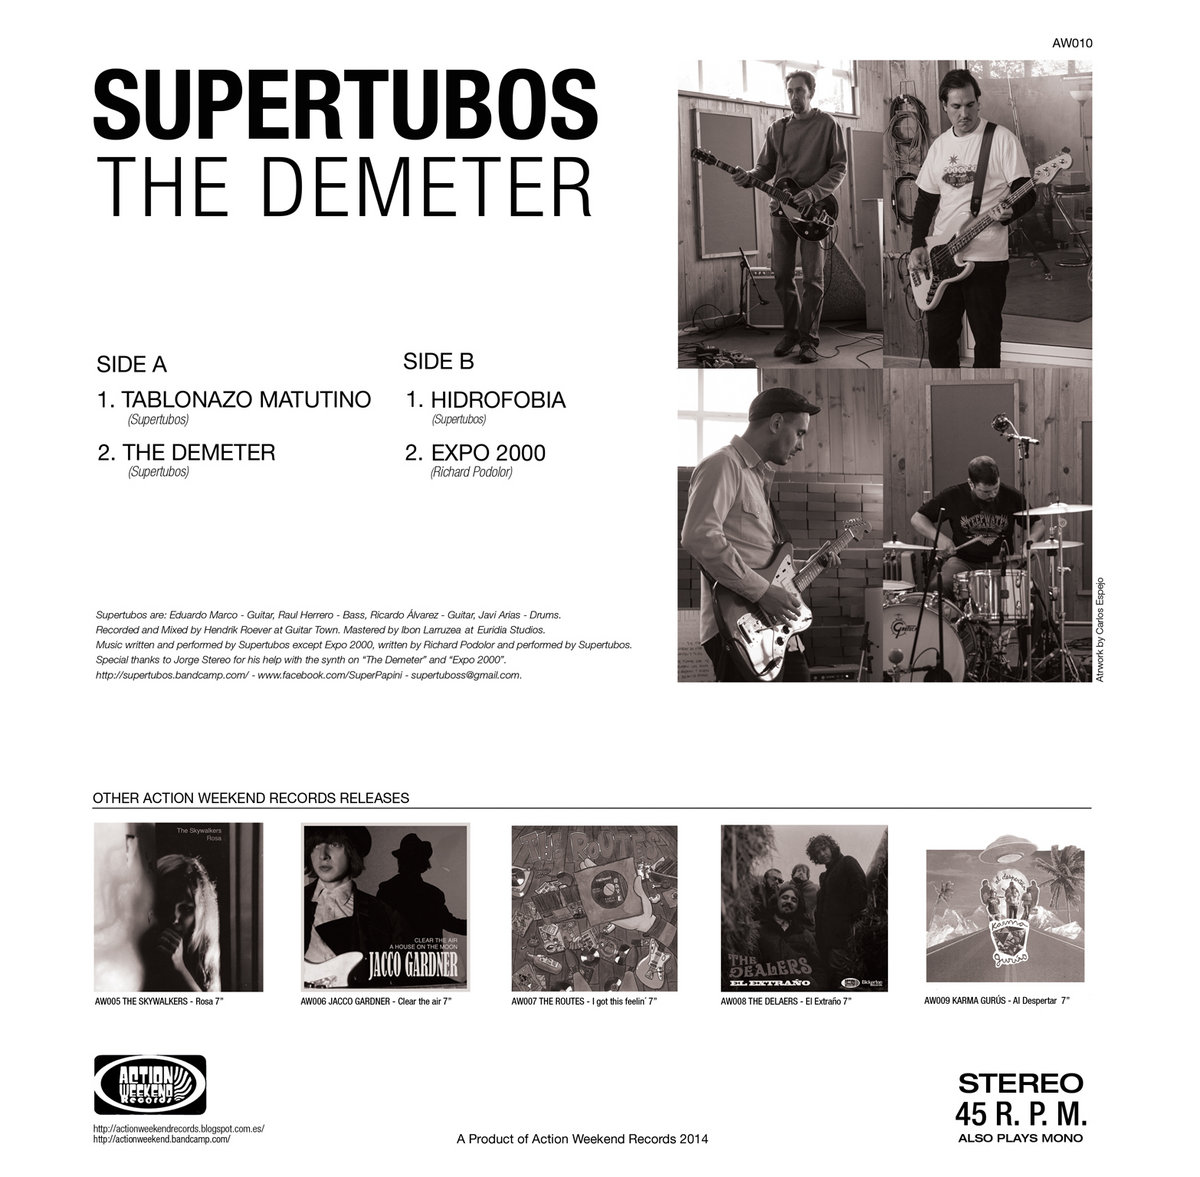 Supertubos - The Demeter (AW010)   Action Weekend